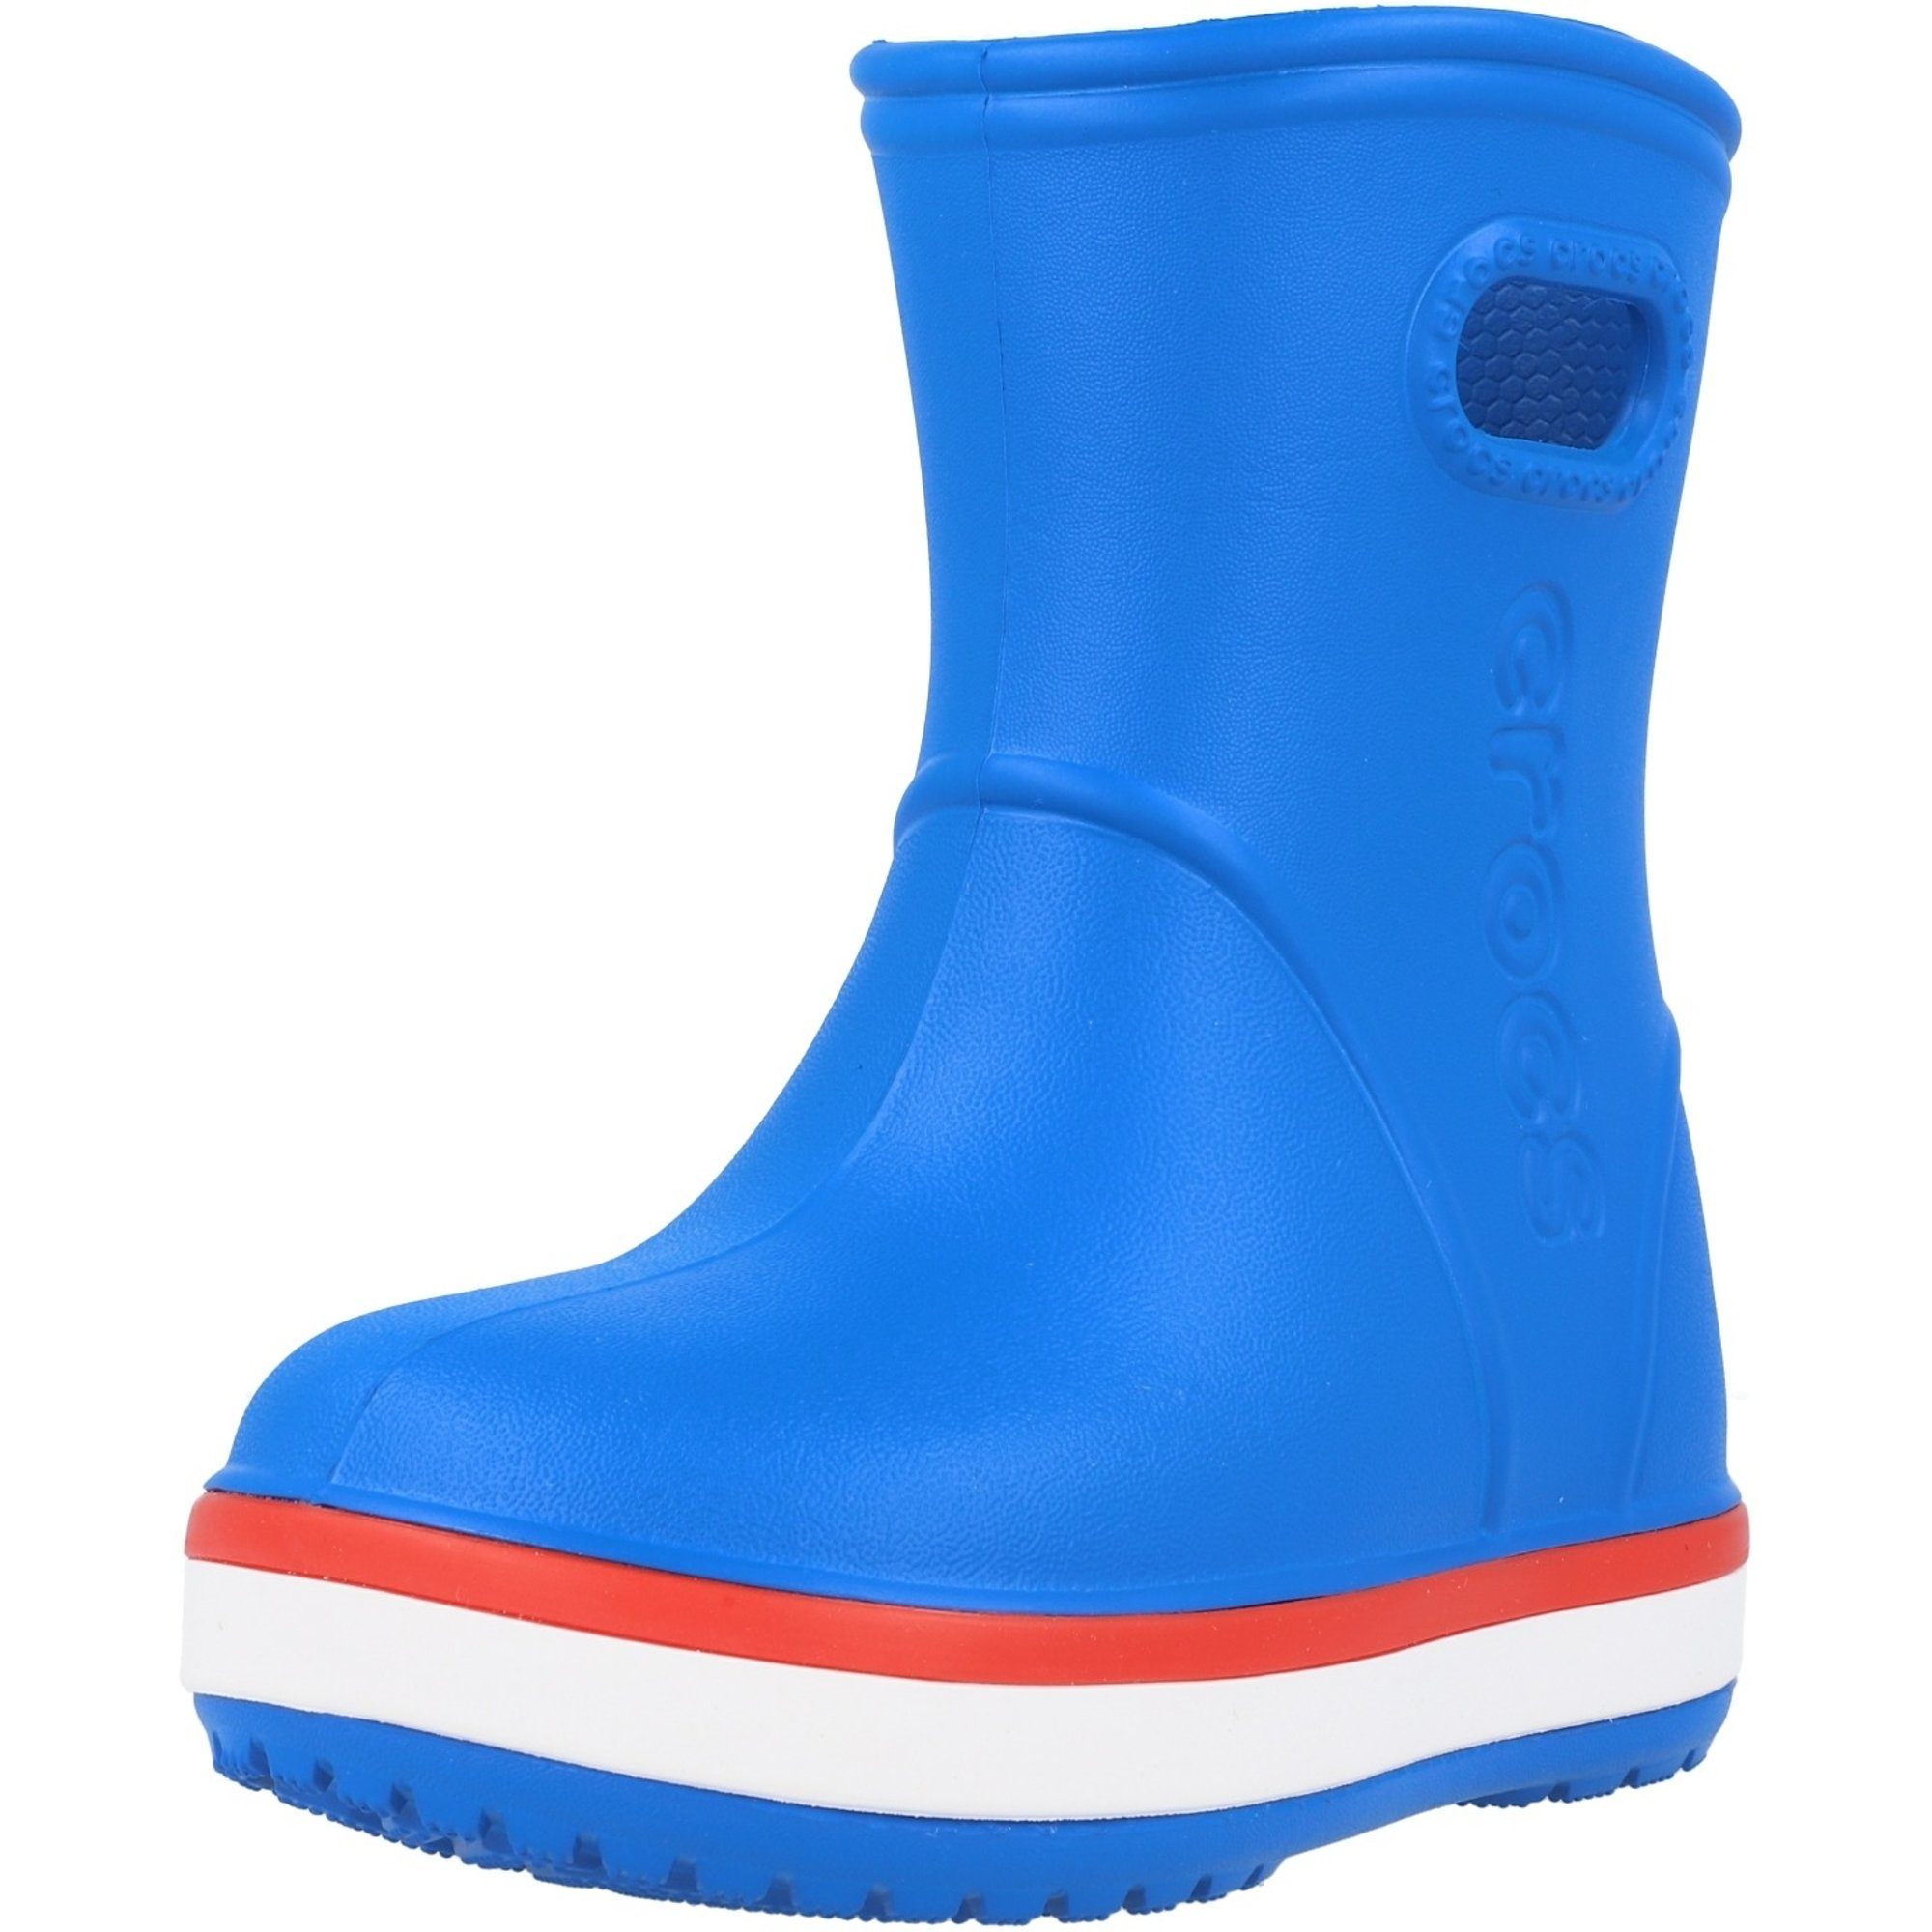 Crocs Kids Crocband Rain Boot Bright Cobalt/Flame Croslite